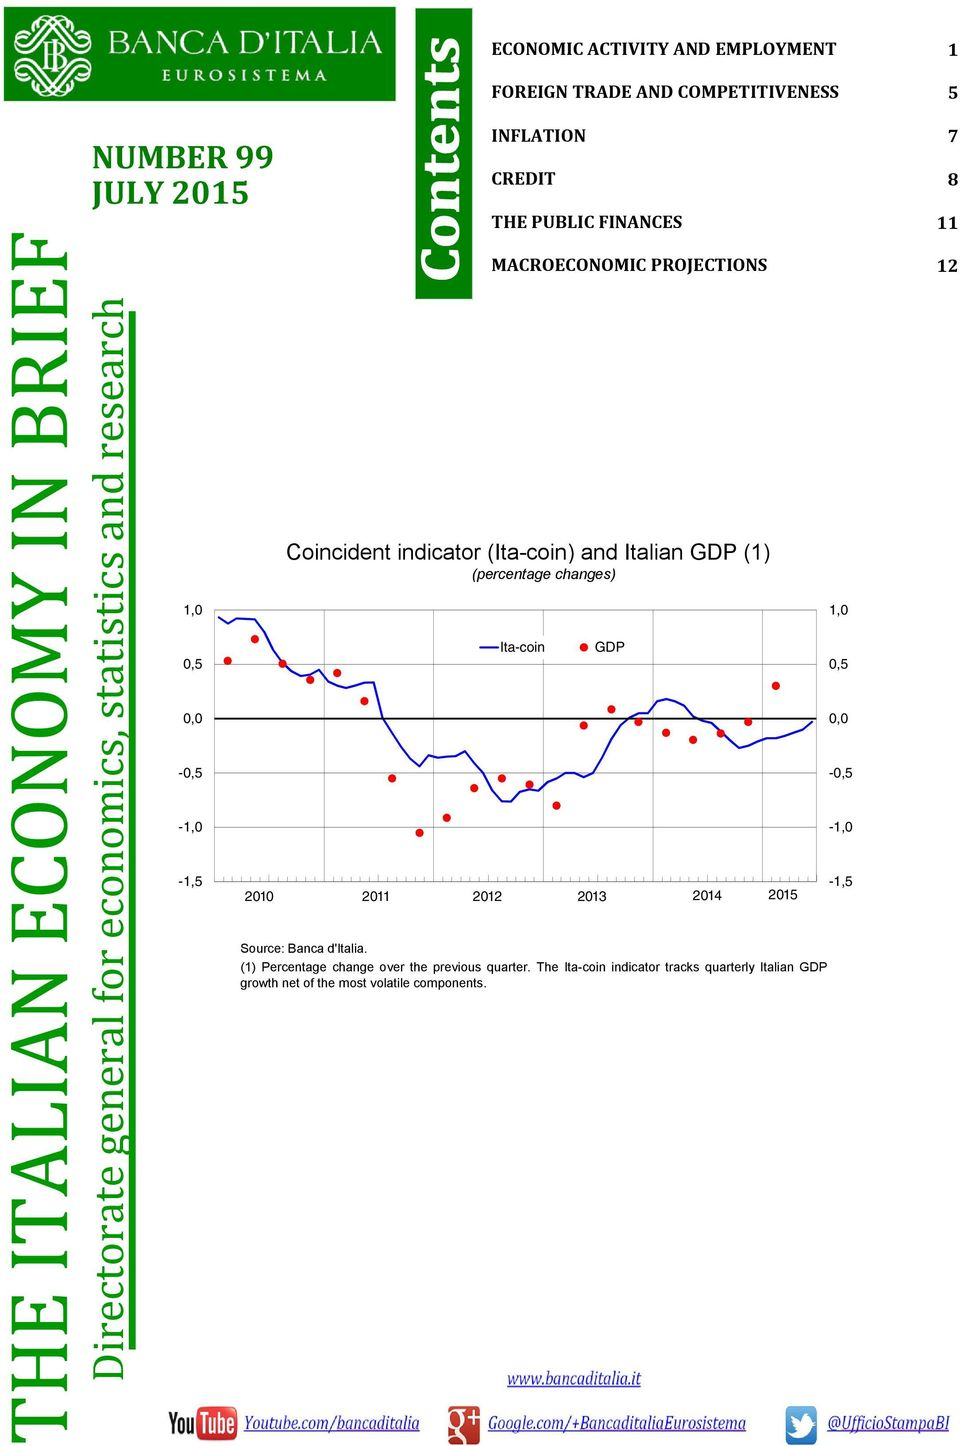 indicator (Ita-coin) and Italian GDP (1) (percentage changes) Ita-coin GDP 21 211 212 21 214 21 Source: Banca d'italia.